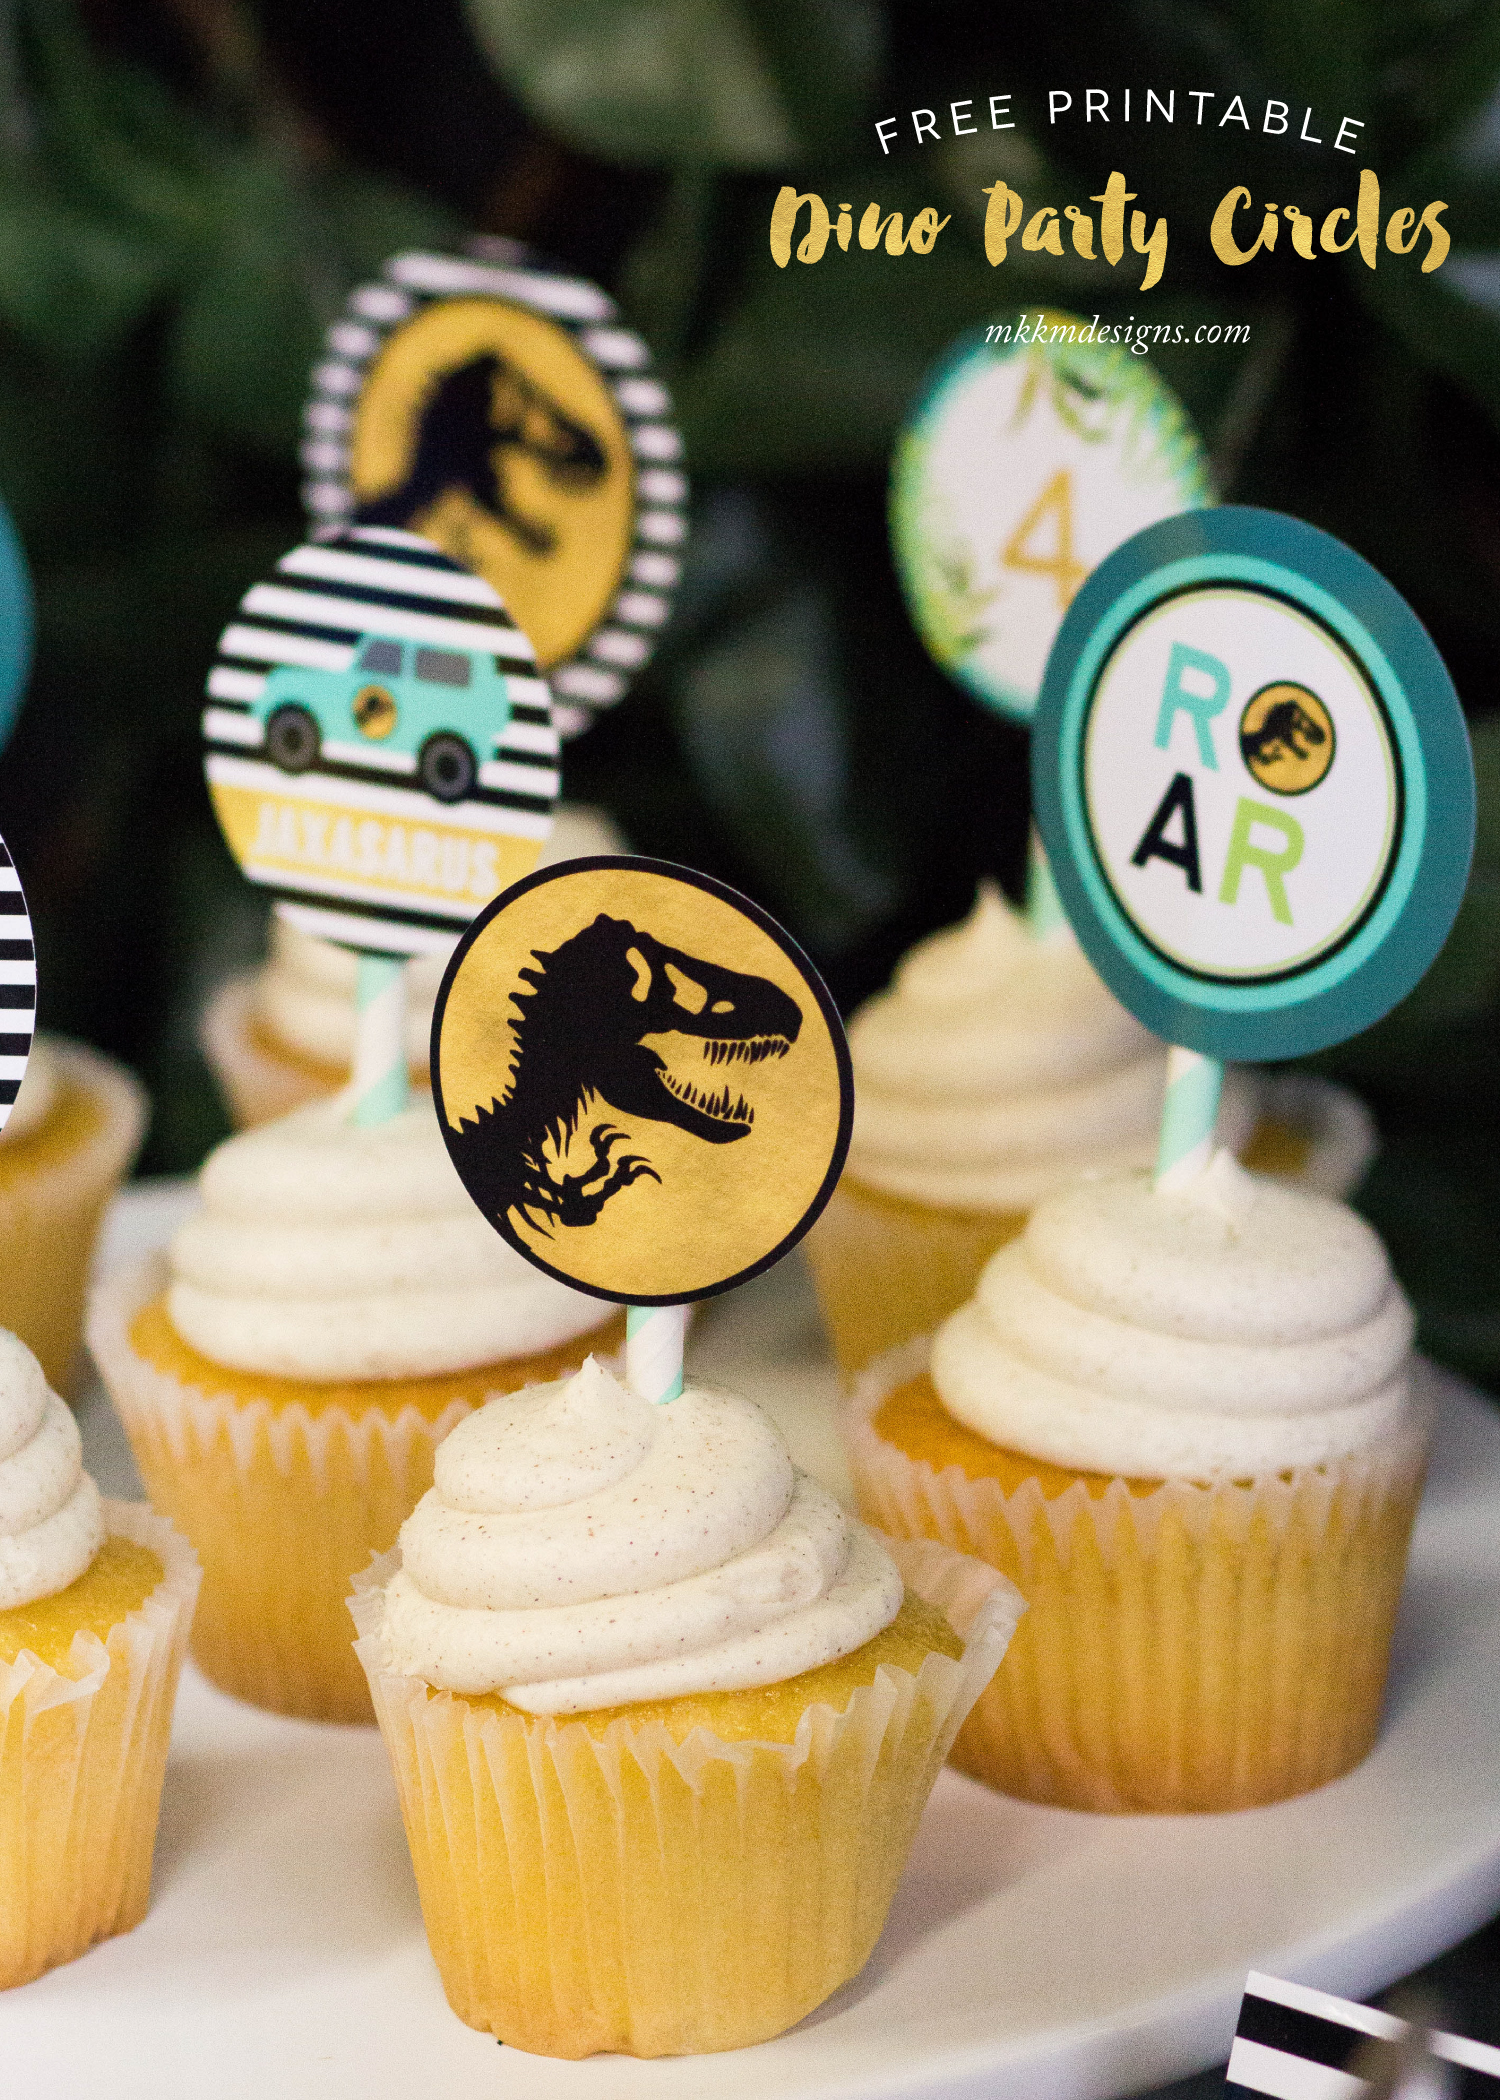 Free Printable Dinosaur Cupcake toppers by MKKMDesigns